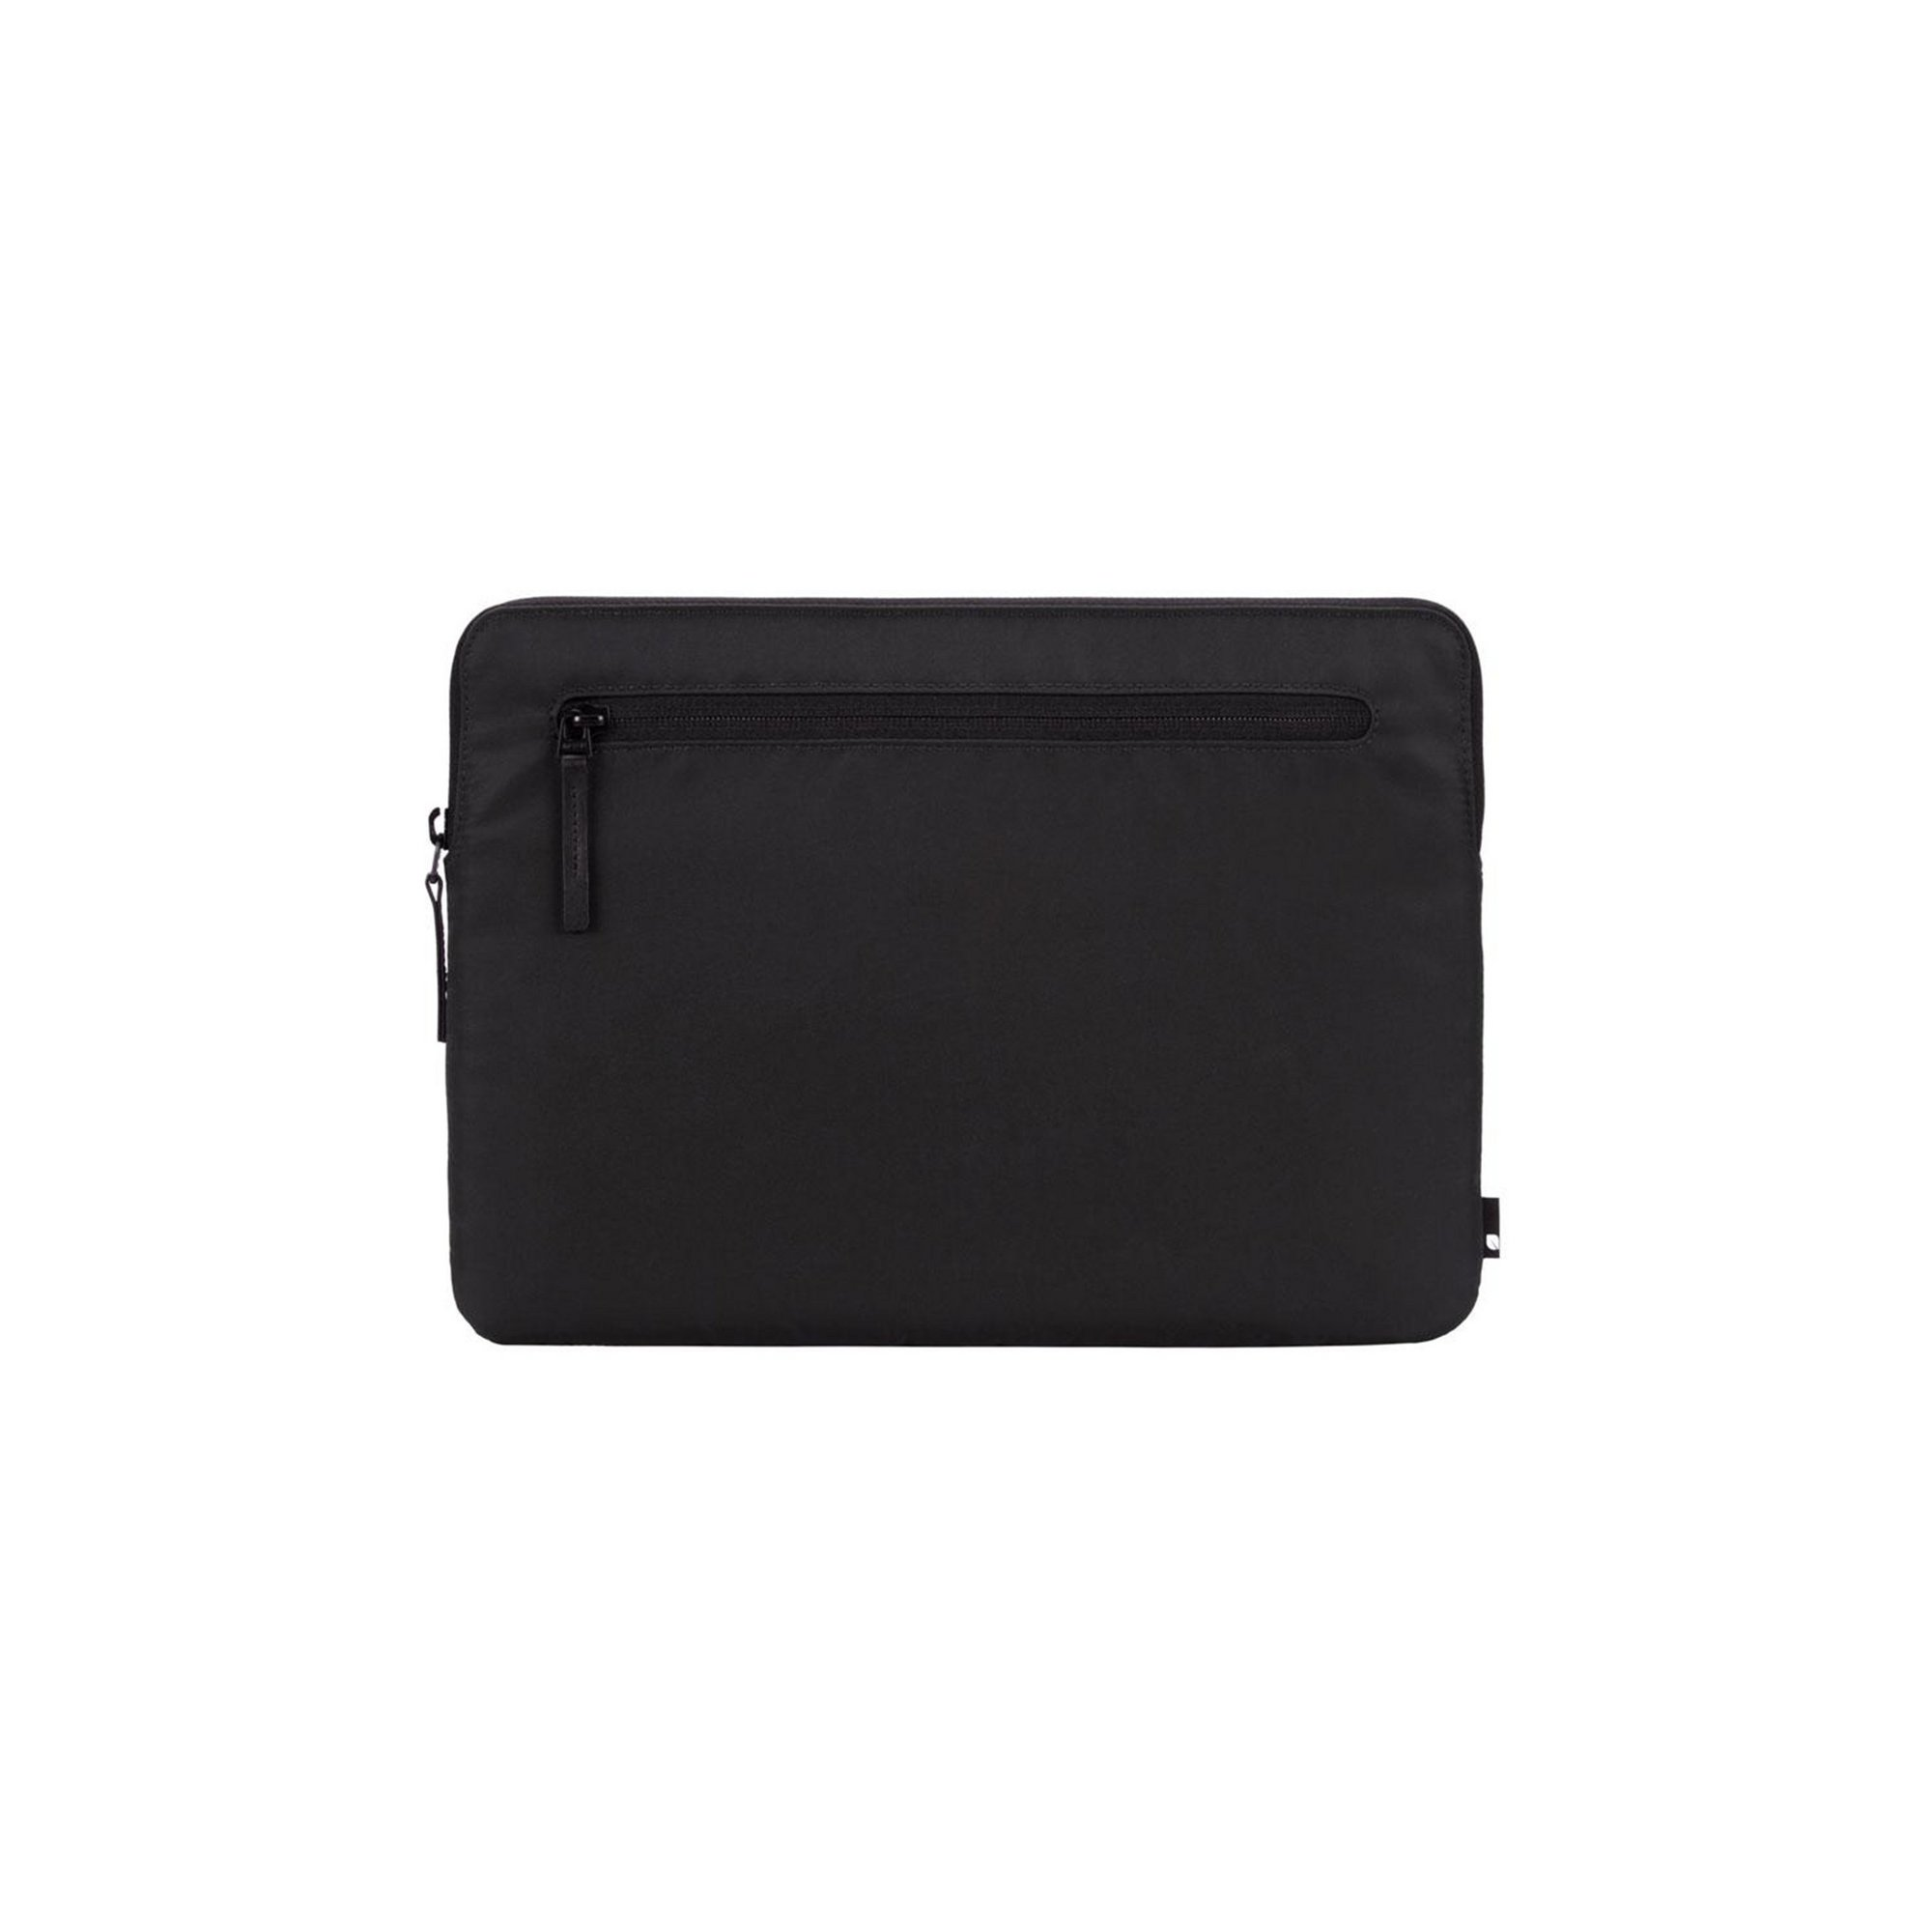 Image of Incase Compact 13.3 Inch Black MacBook Pro and Air Sleeve